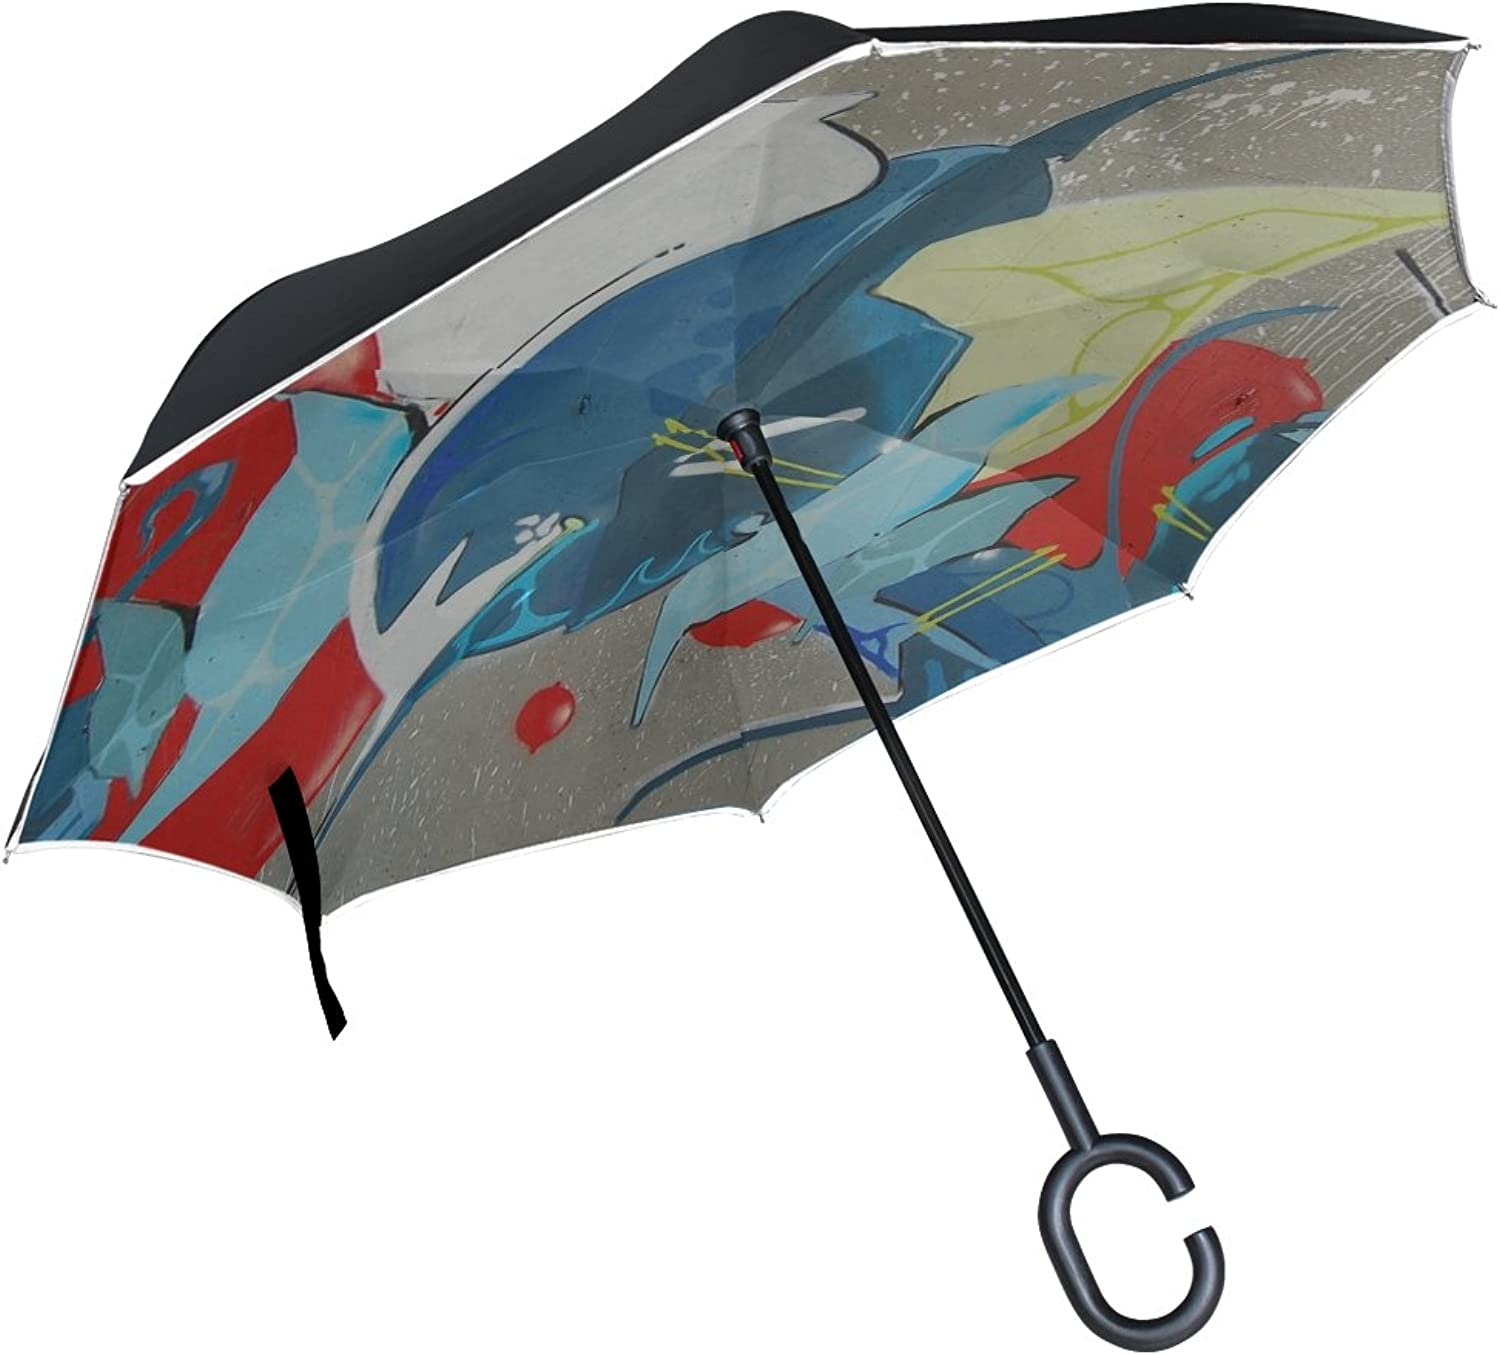 Double Layer Ingreened Abstract Art Graffiti Painting Wall Umbrellas Reverse Folding Umbrella Windproof Uv Predection Big Straight Umbrella for Car Rain Outdoor with CShaped Handle